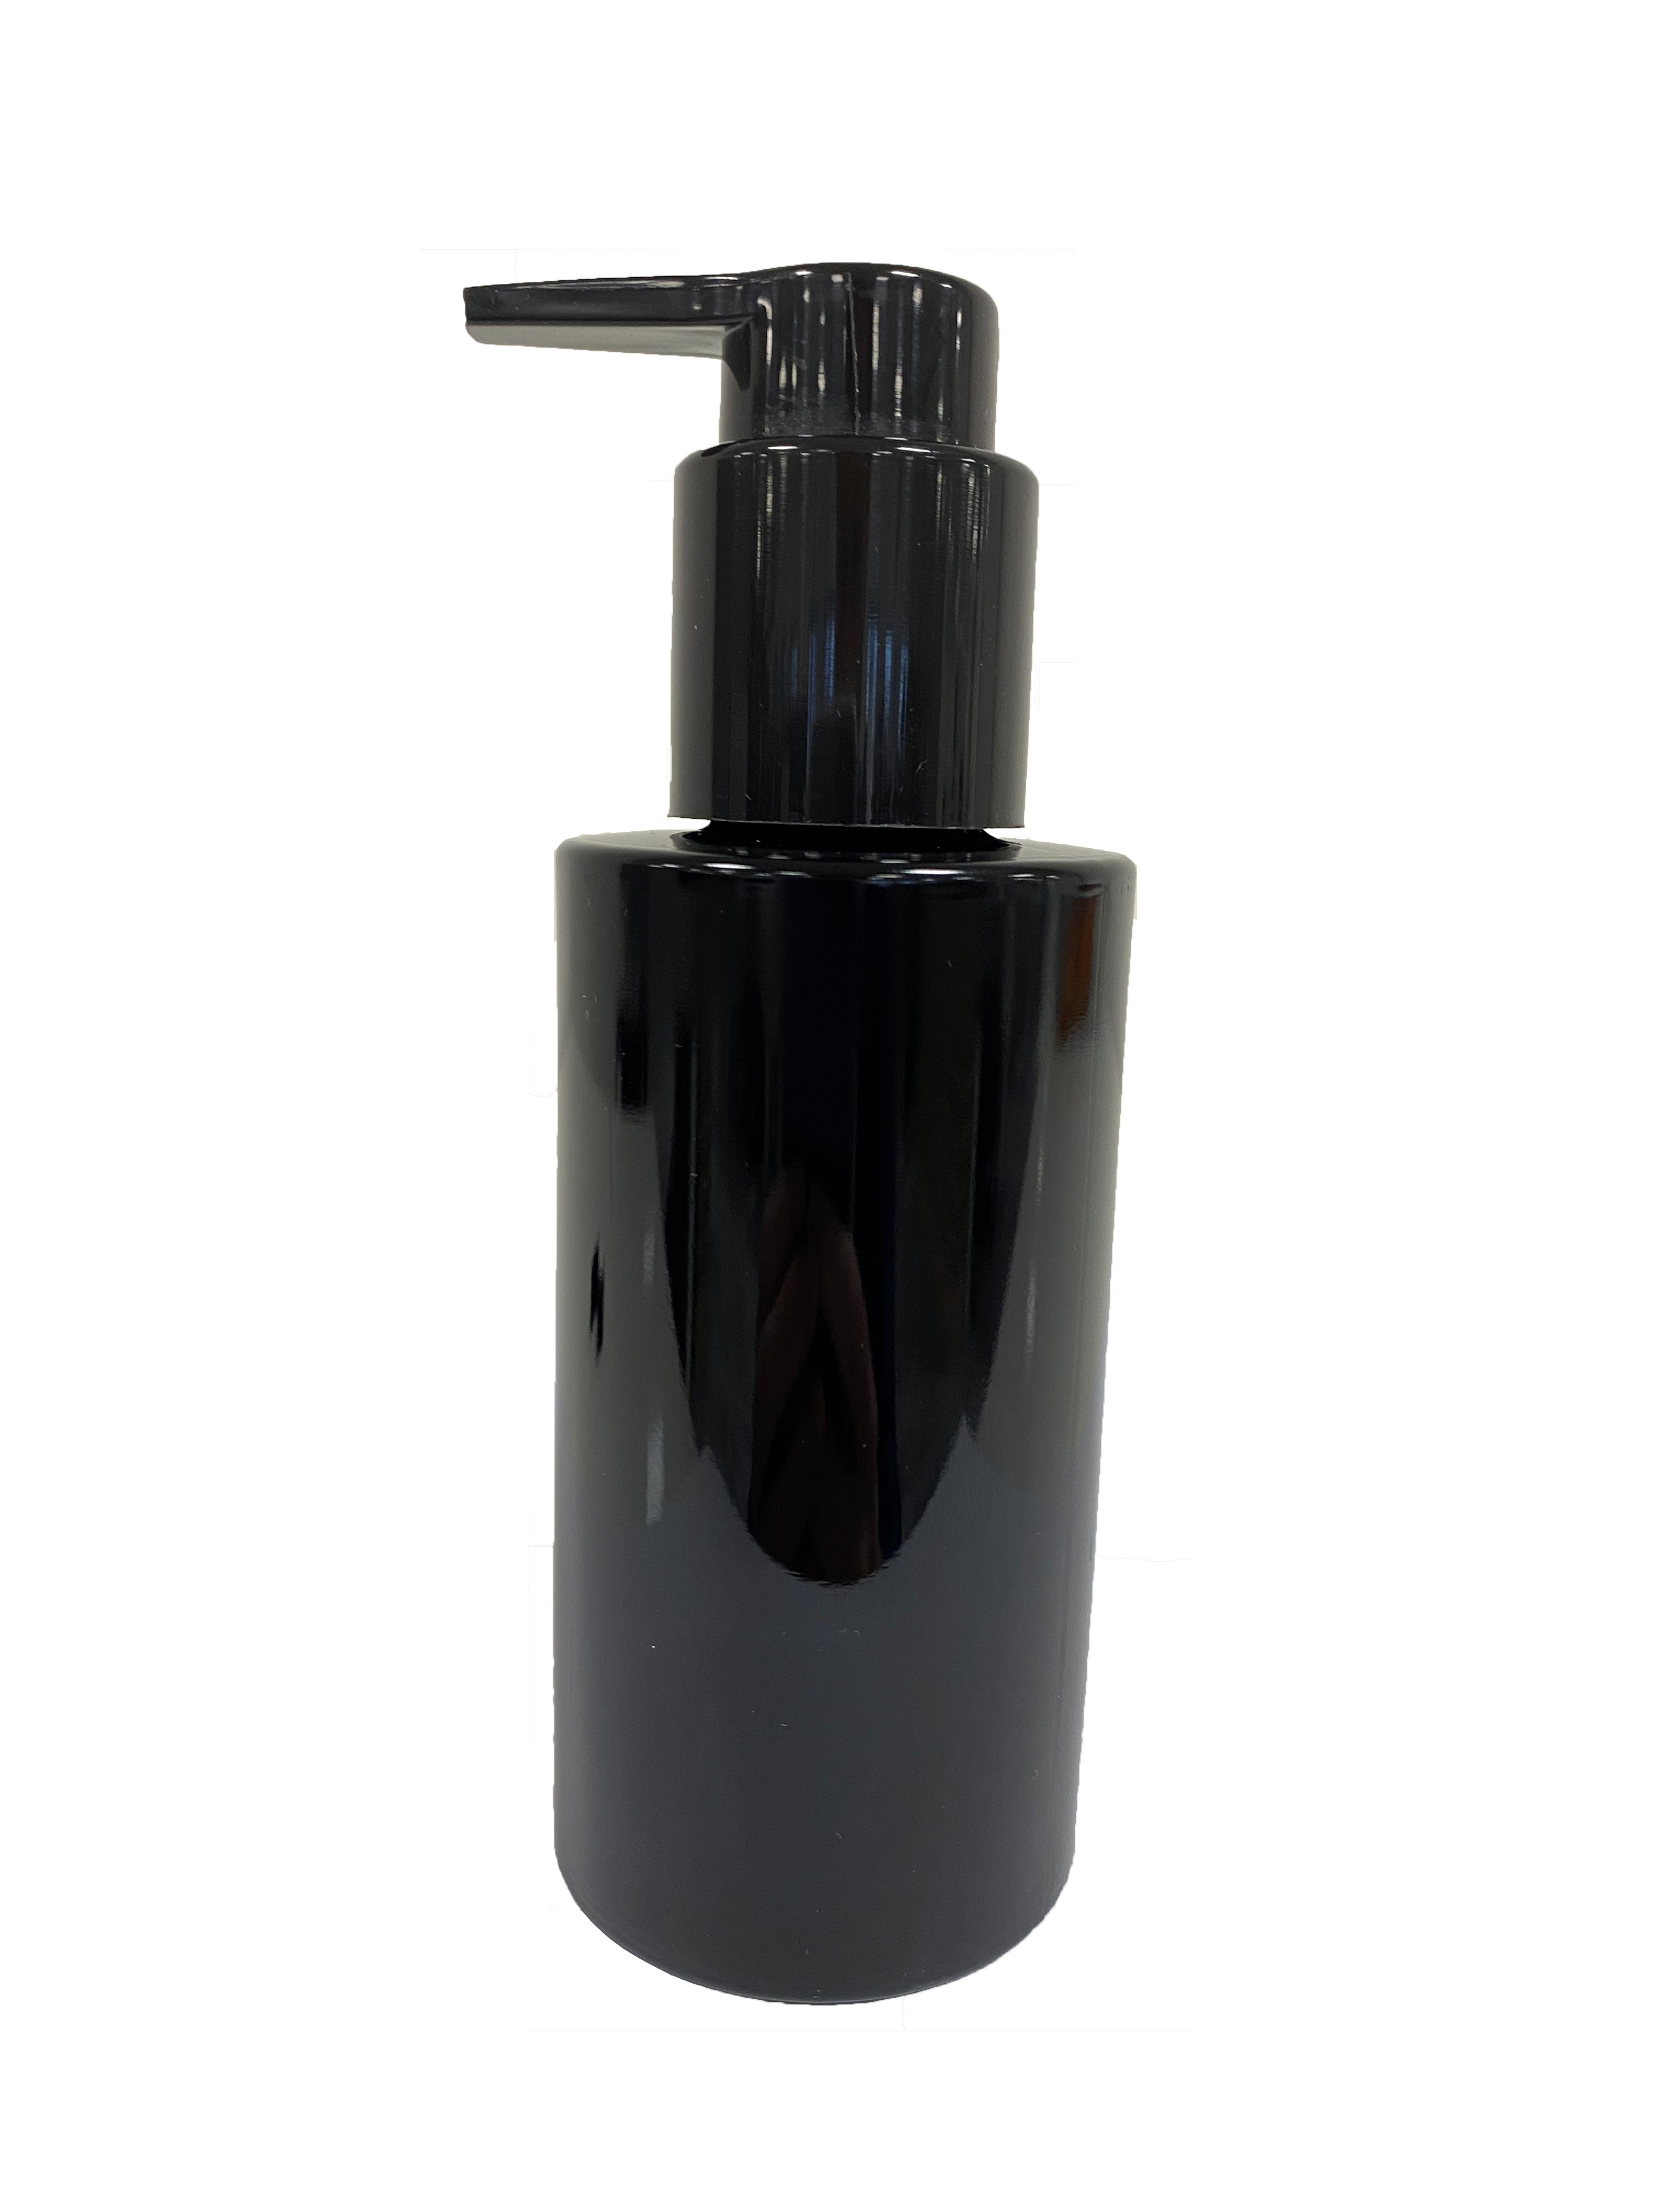 Lotion pump extended nozzle, 24/410, PP, black, smooth, dose 0.50 ml, 2.0mm tri-seal gasket, with security clip